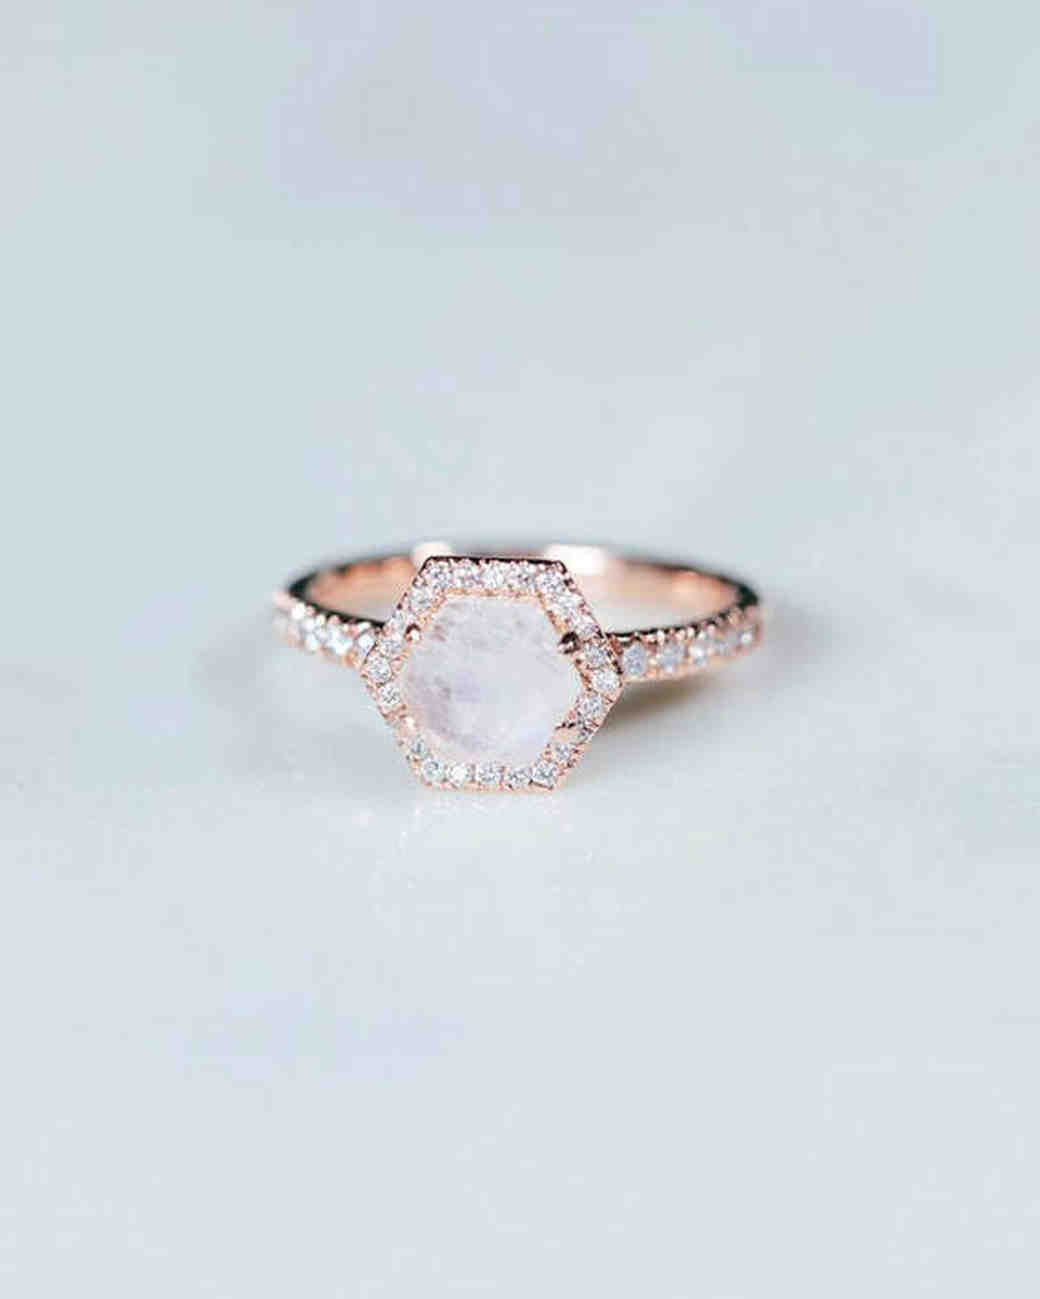 6504ad65553ca0 10 Moonstone Engagement Rings Modern Brides Will Love | Martha Stewart  Weddings